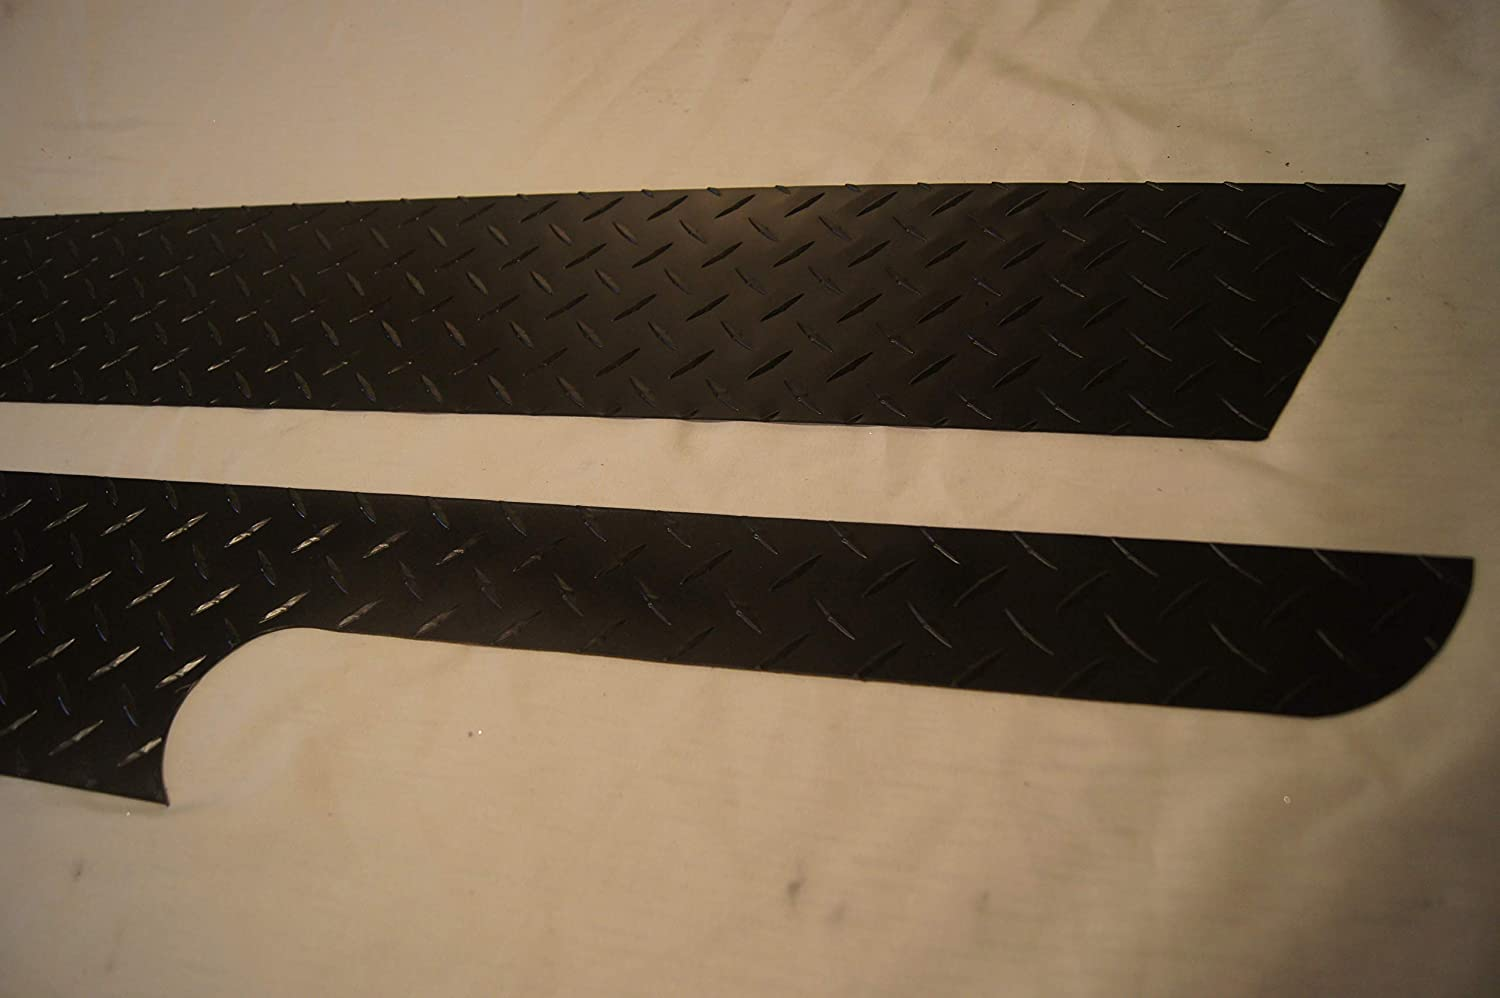 1987-1995 Jeep YJ Wrangler Matte Black Diamond Plate Side Rocker Panel 6 '' INCHES Wide with Cut Outs JEEPERSCREEPERS